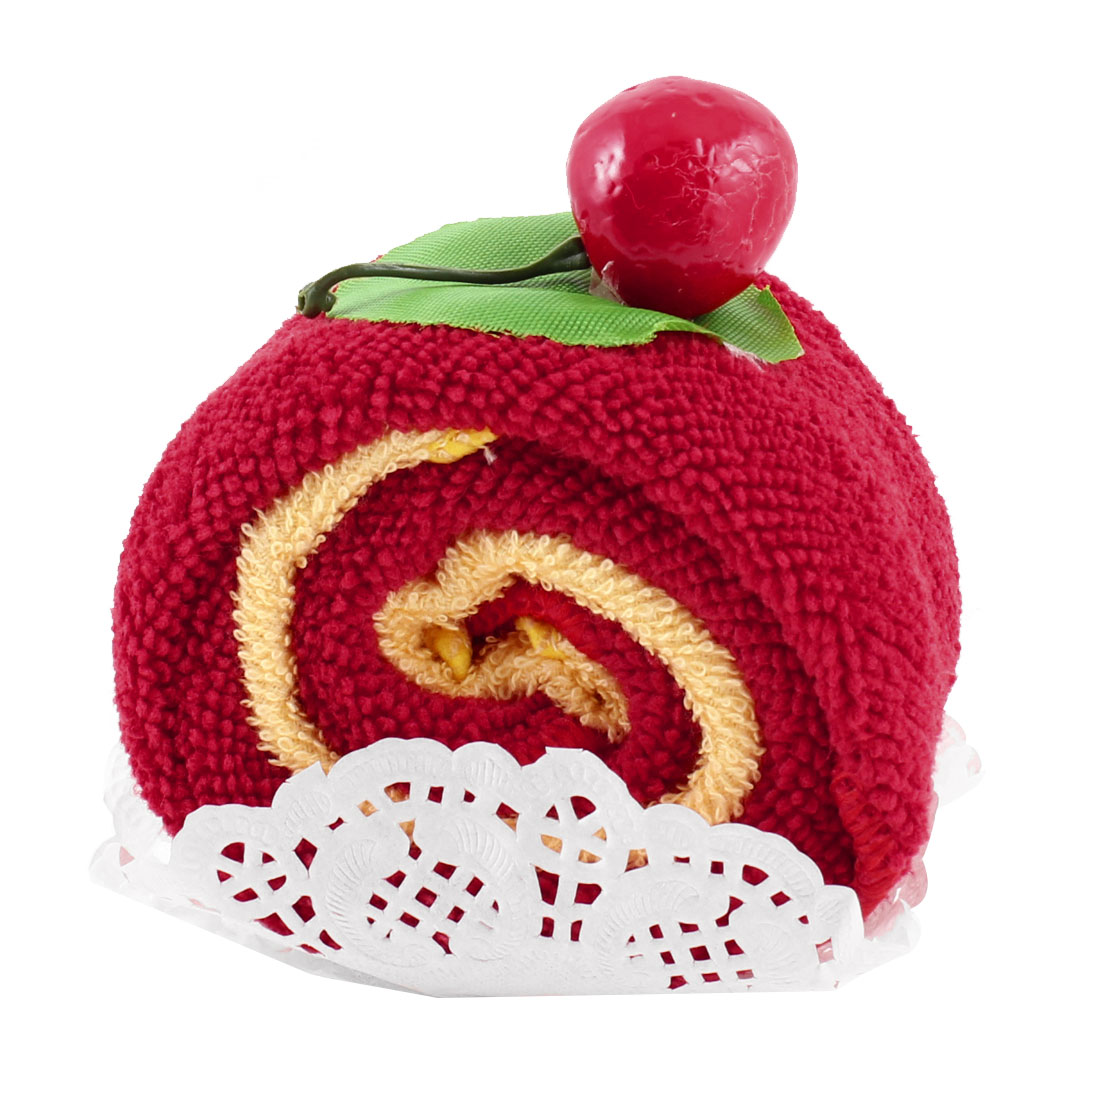 Cherry Decor Cake Shaped Showering Bath Towel Red Yellow